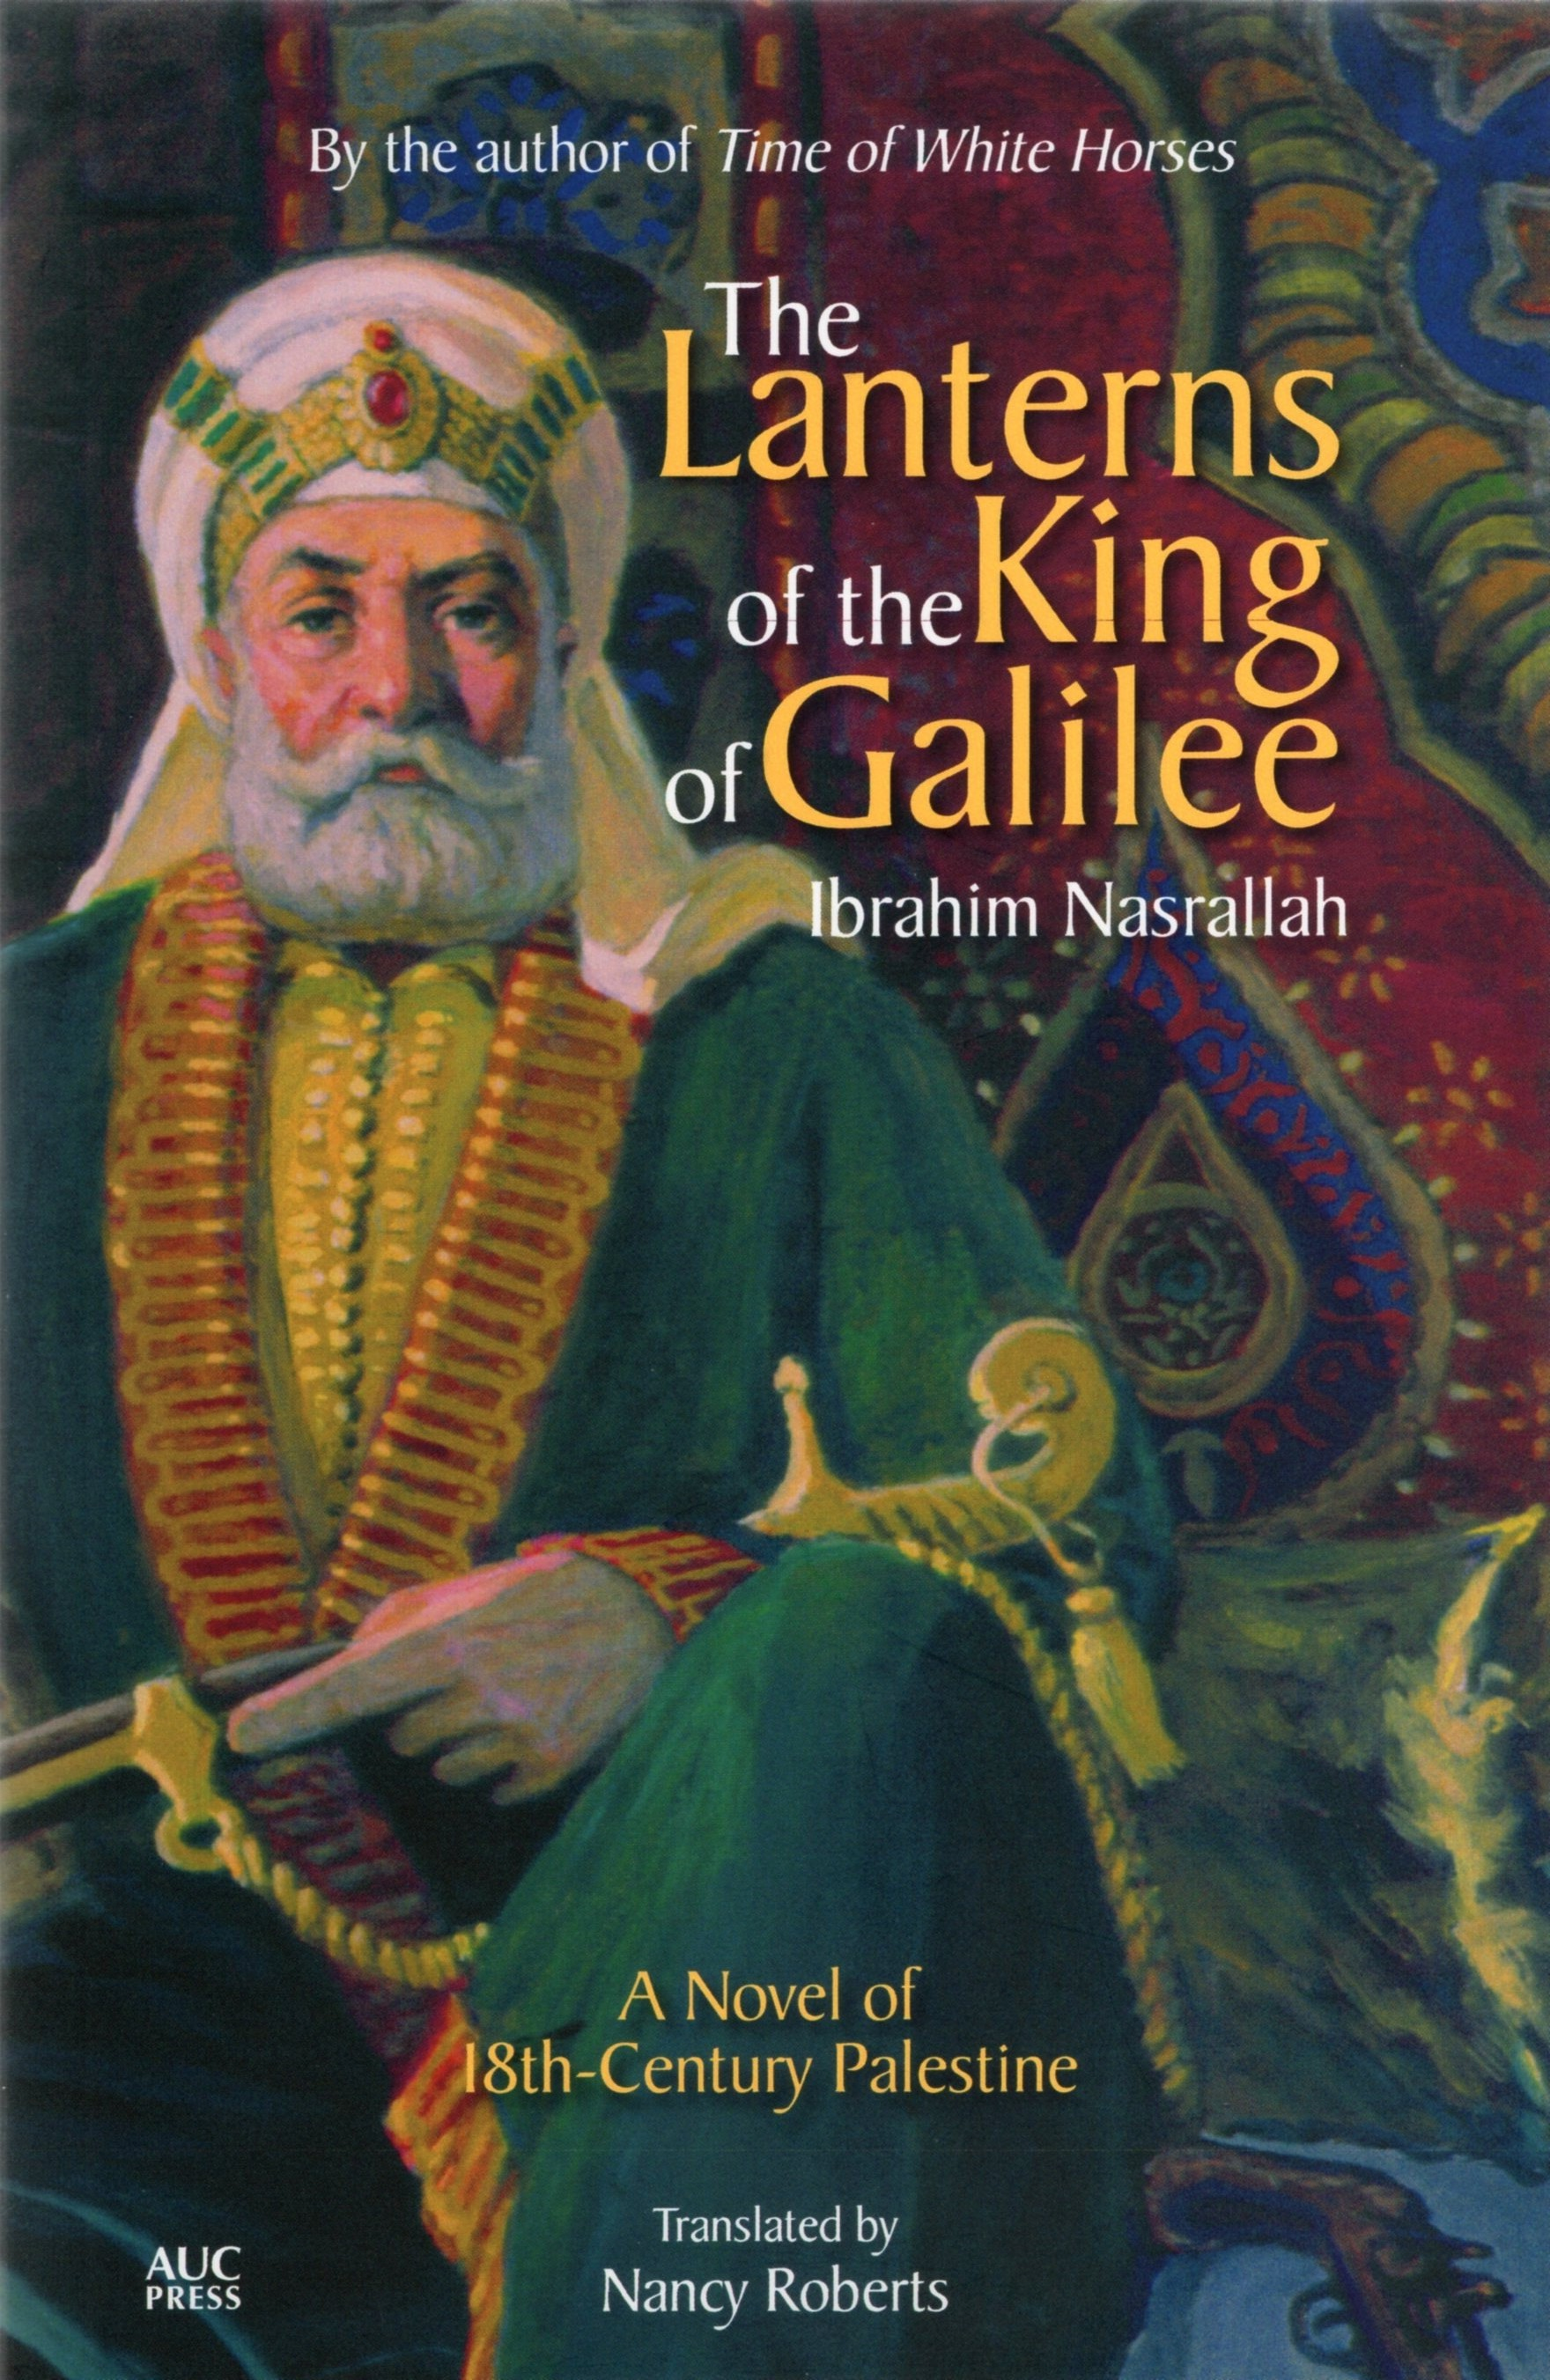 Lanterns of the King of Galilee_book cover